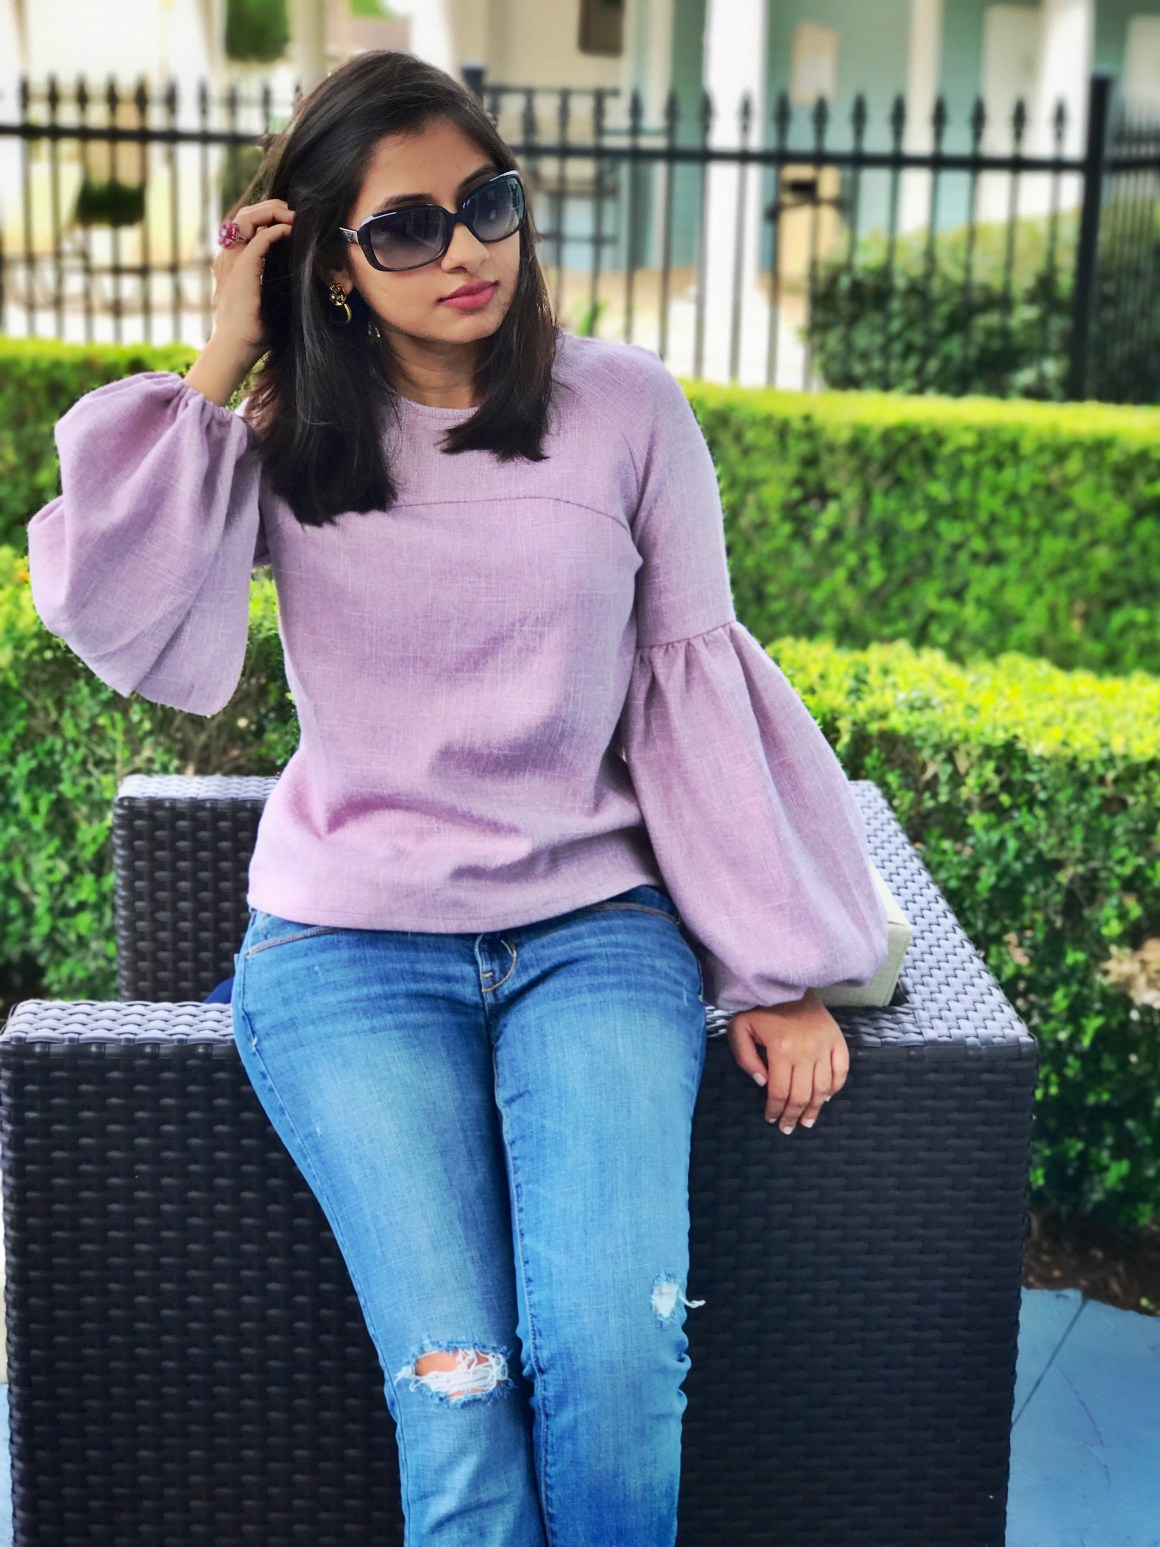 Dramatic Sleeves - Shein top, sunglasses Emporio Armani